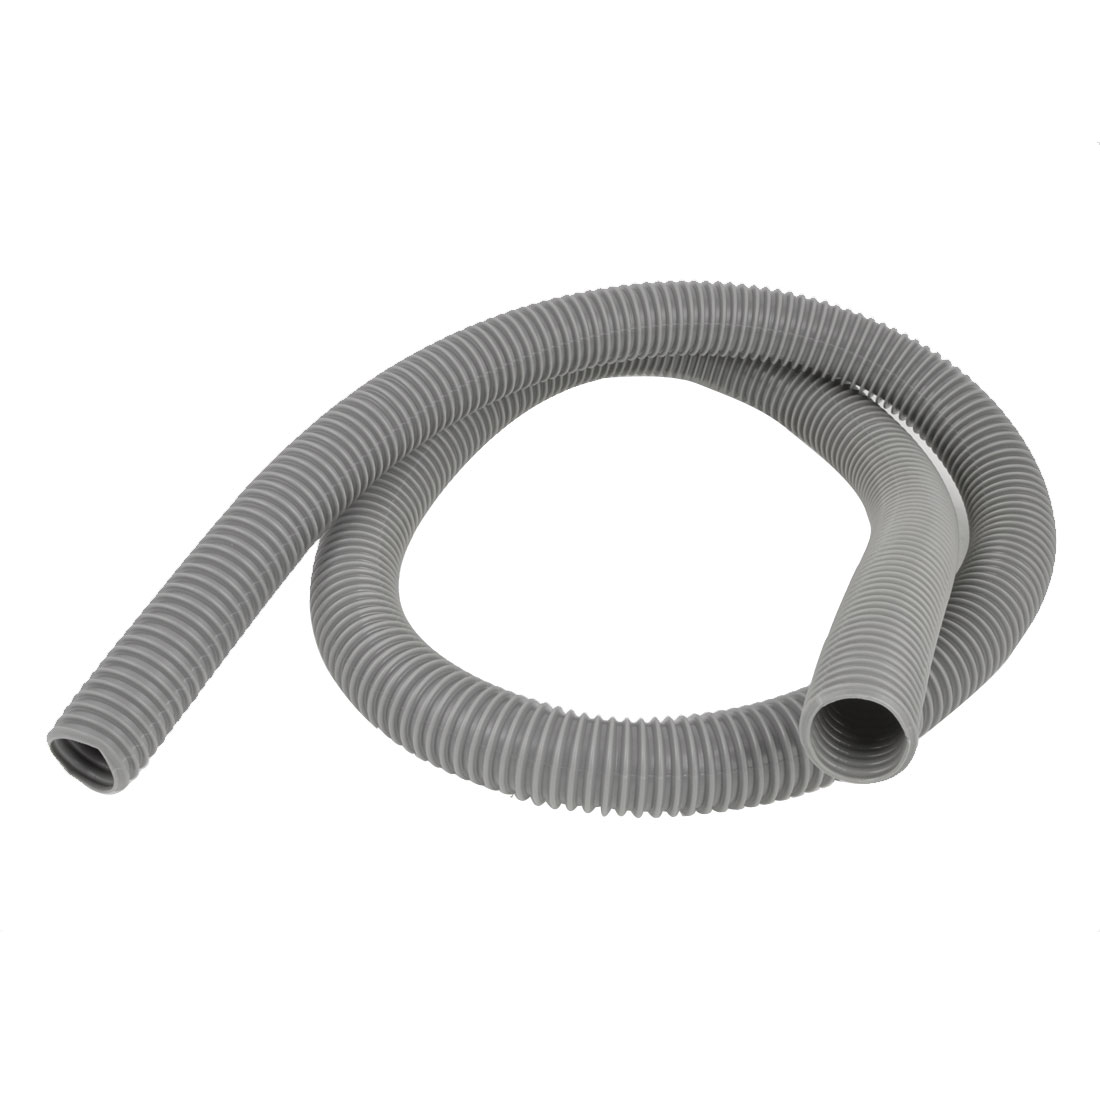 Home 40mm Outer Diameter Vacuum Cleaner PVC Hose Tube Pipe 1.9M Long